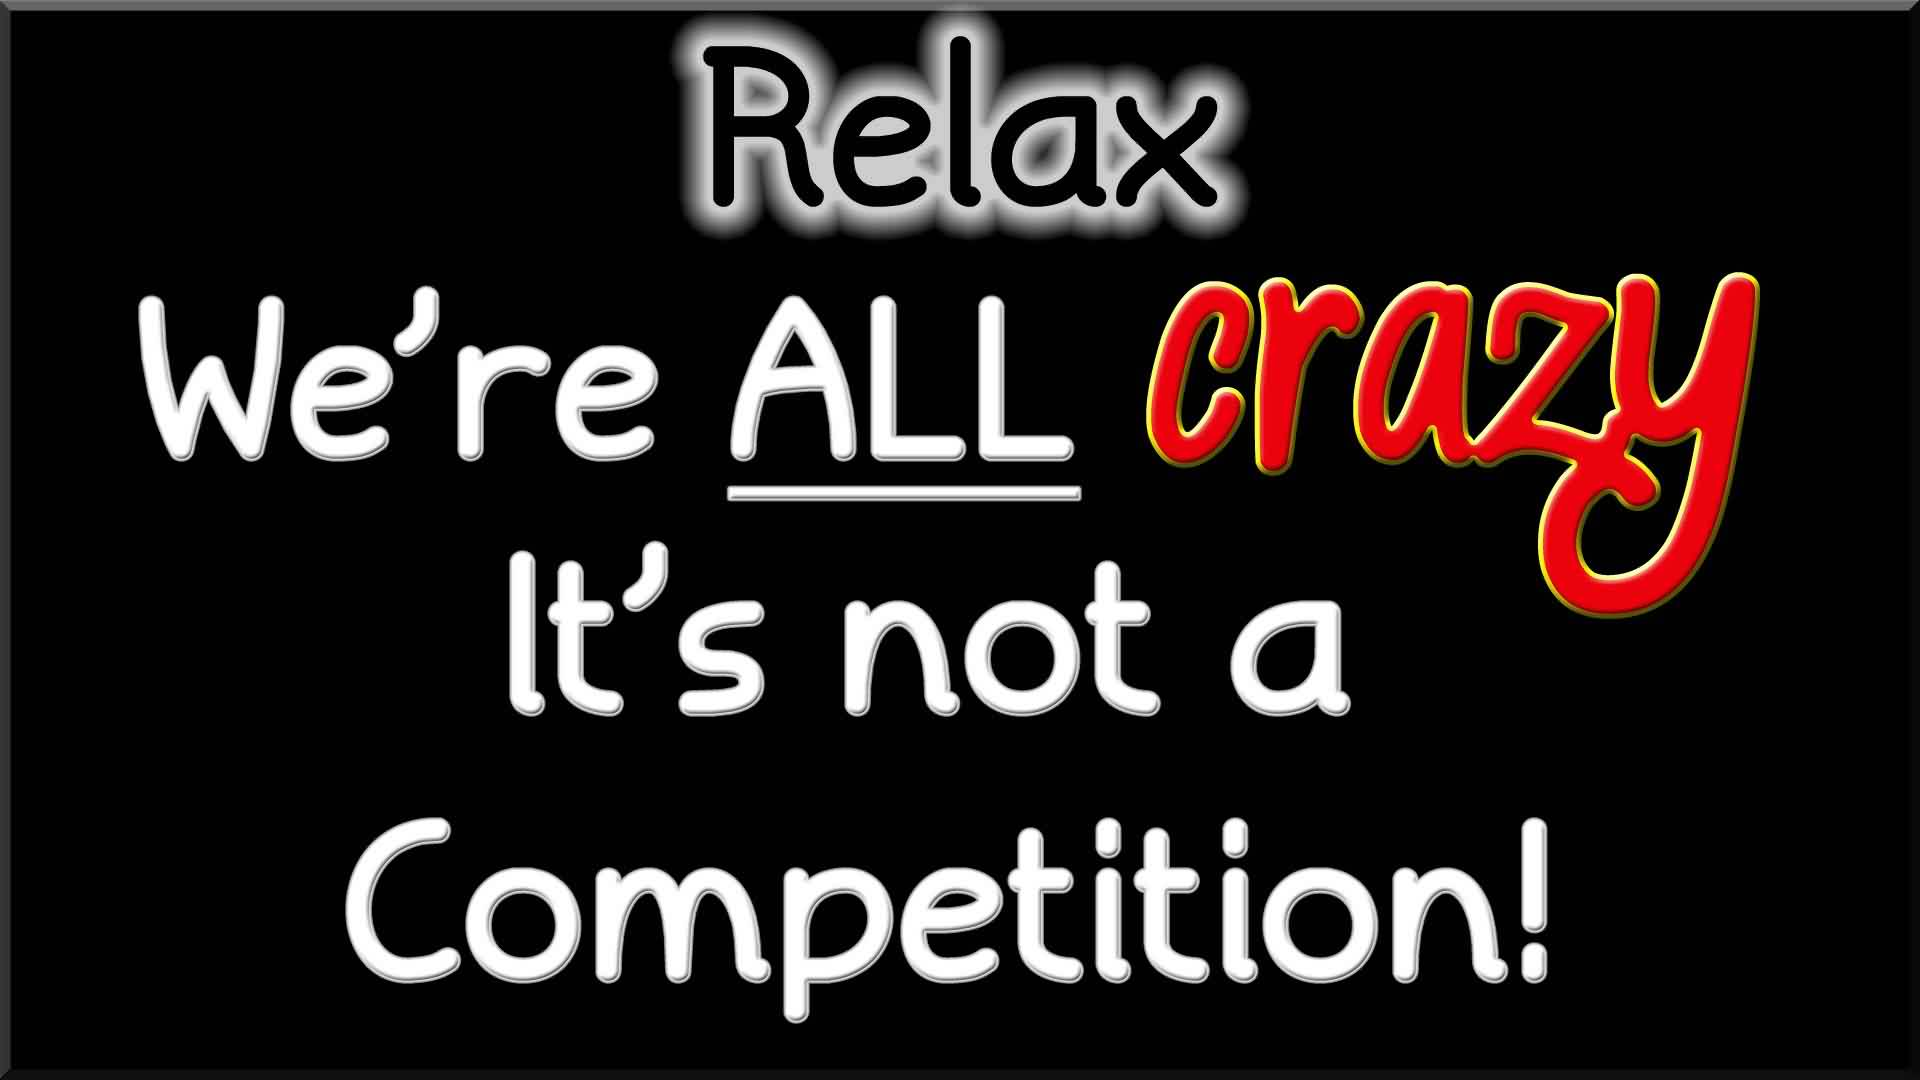 Relax... We're all crazy... It's not a competition